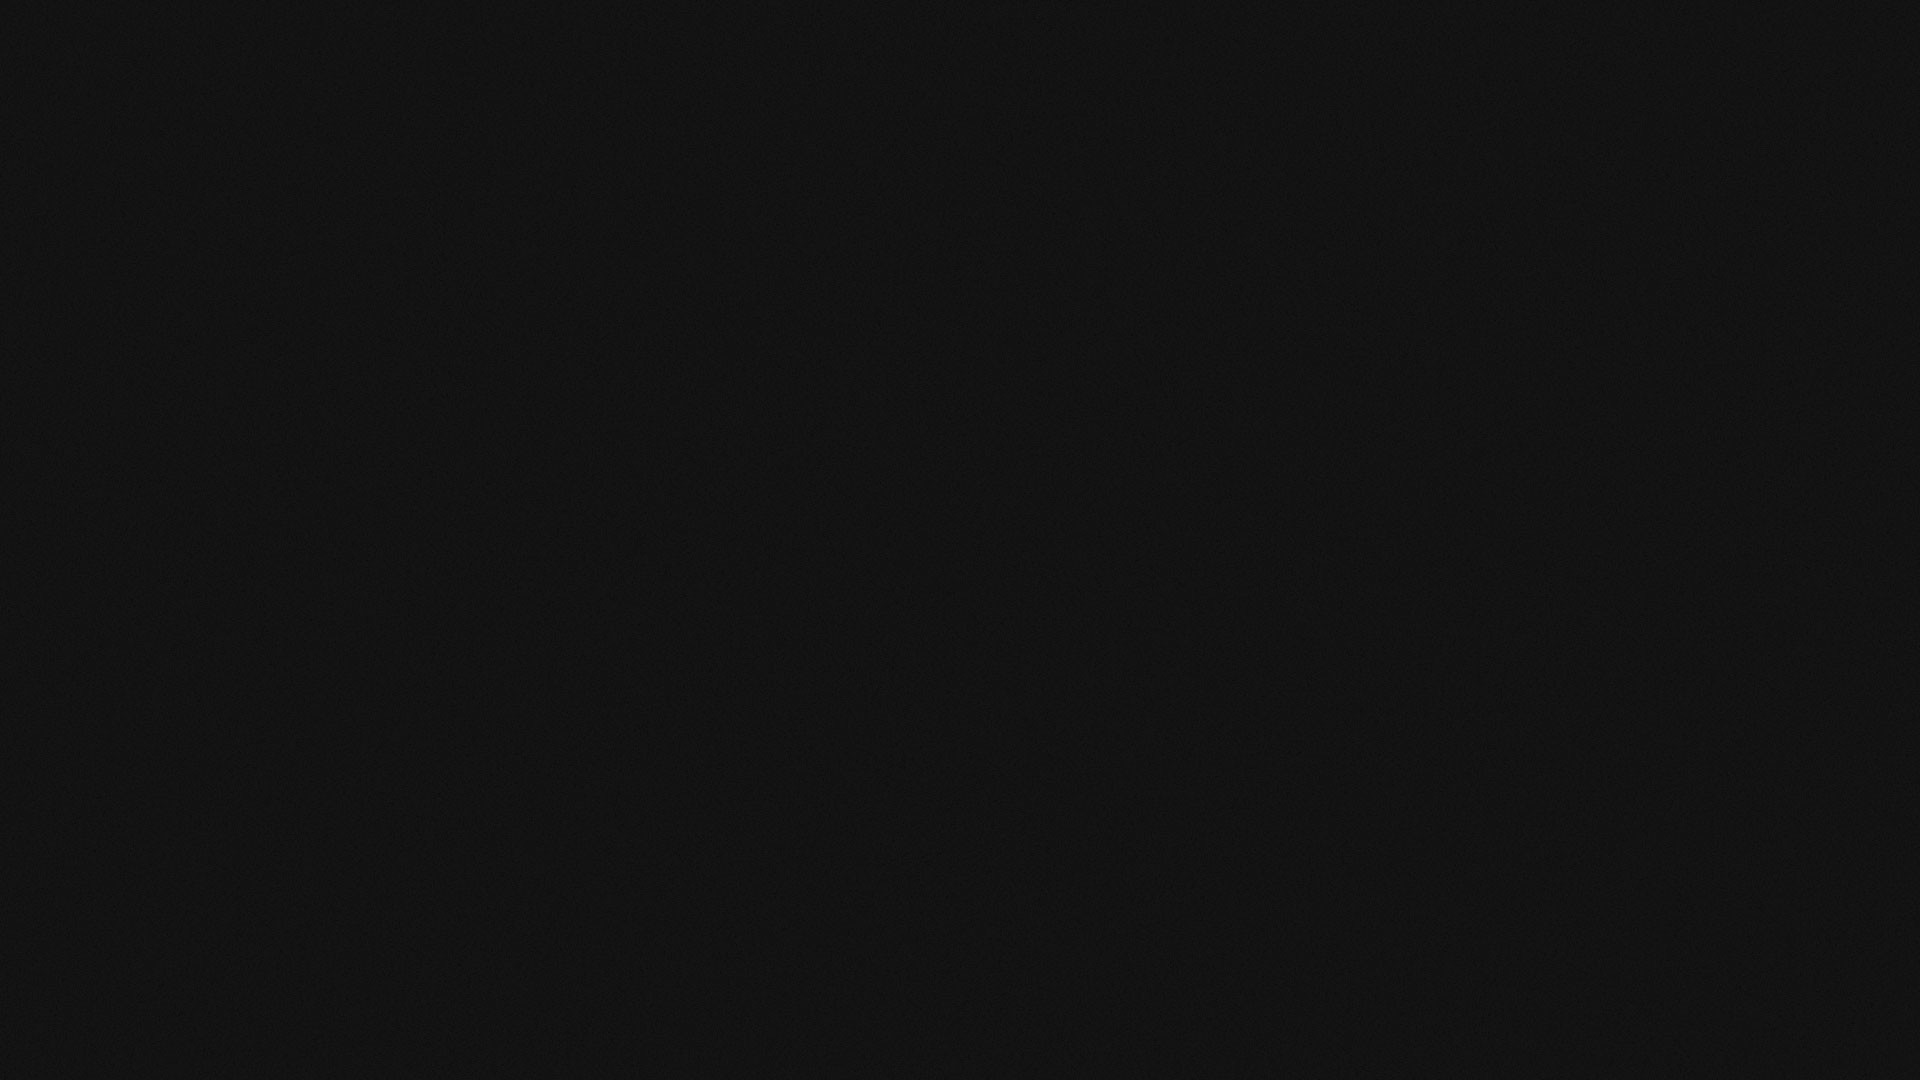 Plain Black Background 50 Free Hd Wallpaper